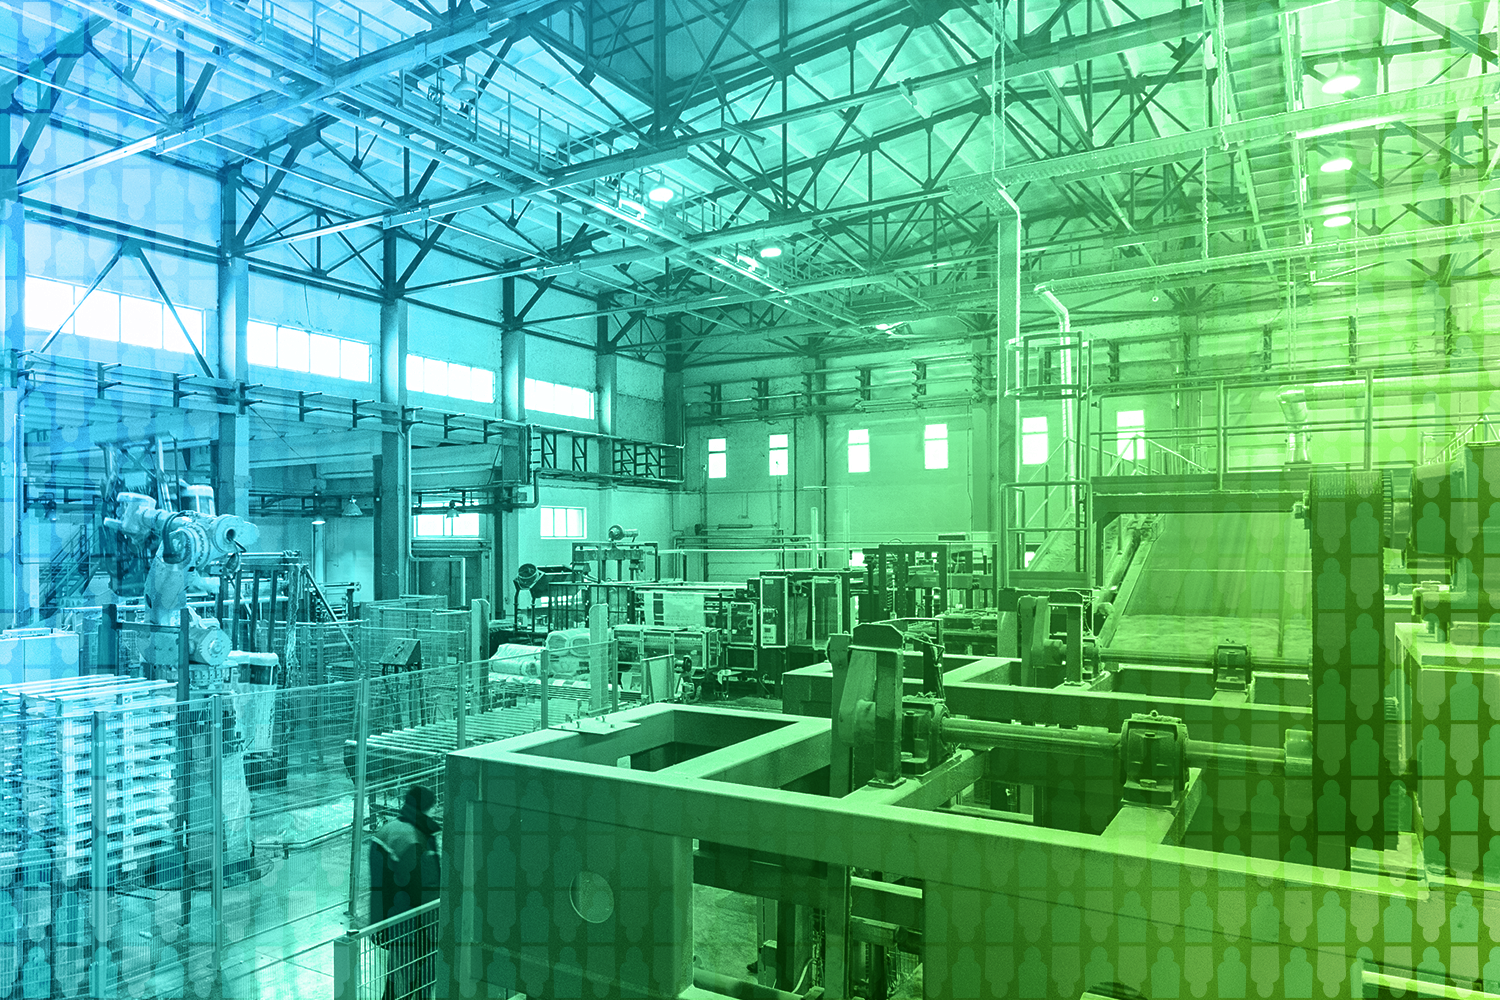 color-treated image of a manufacturing facility